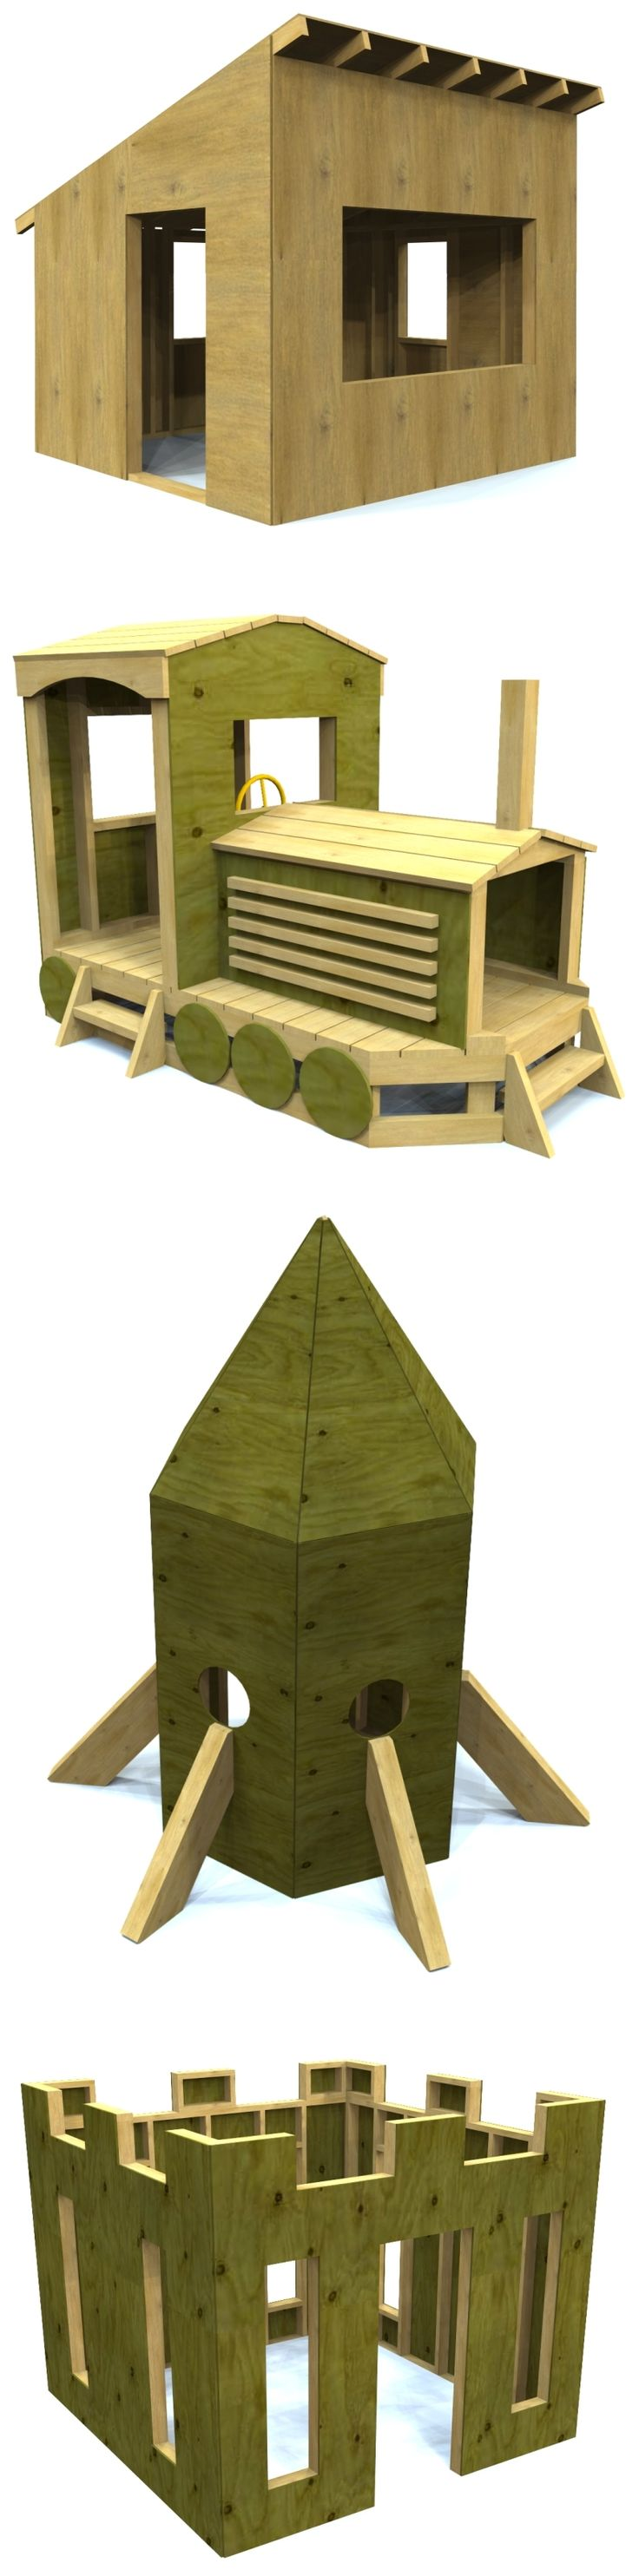 25 best ideas about playhouse plans on pinterest diy for Build your own wooden playset